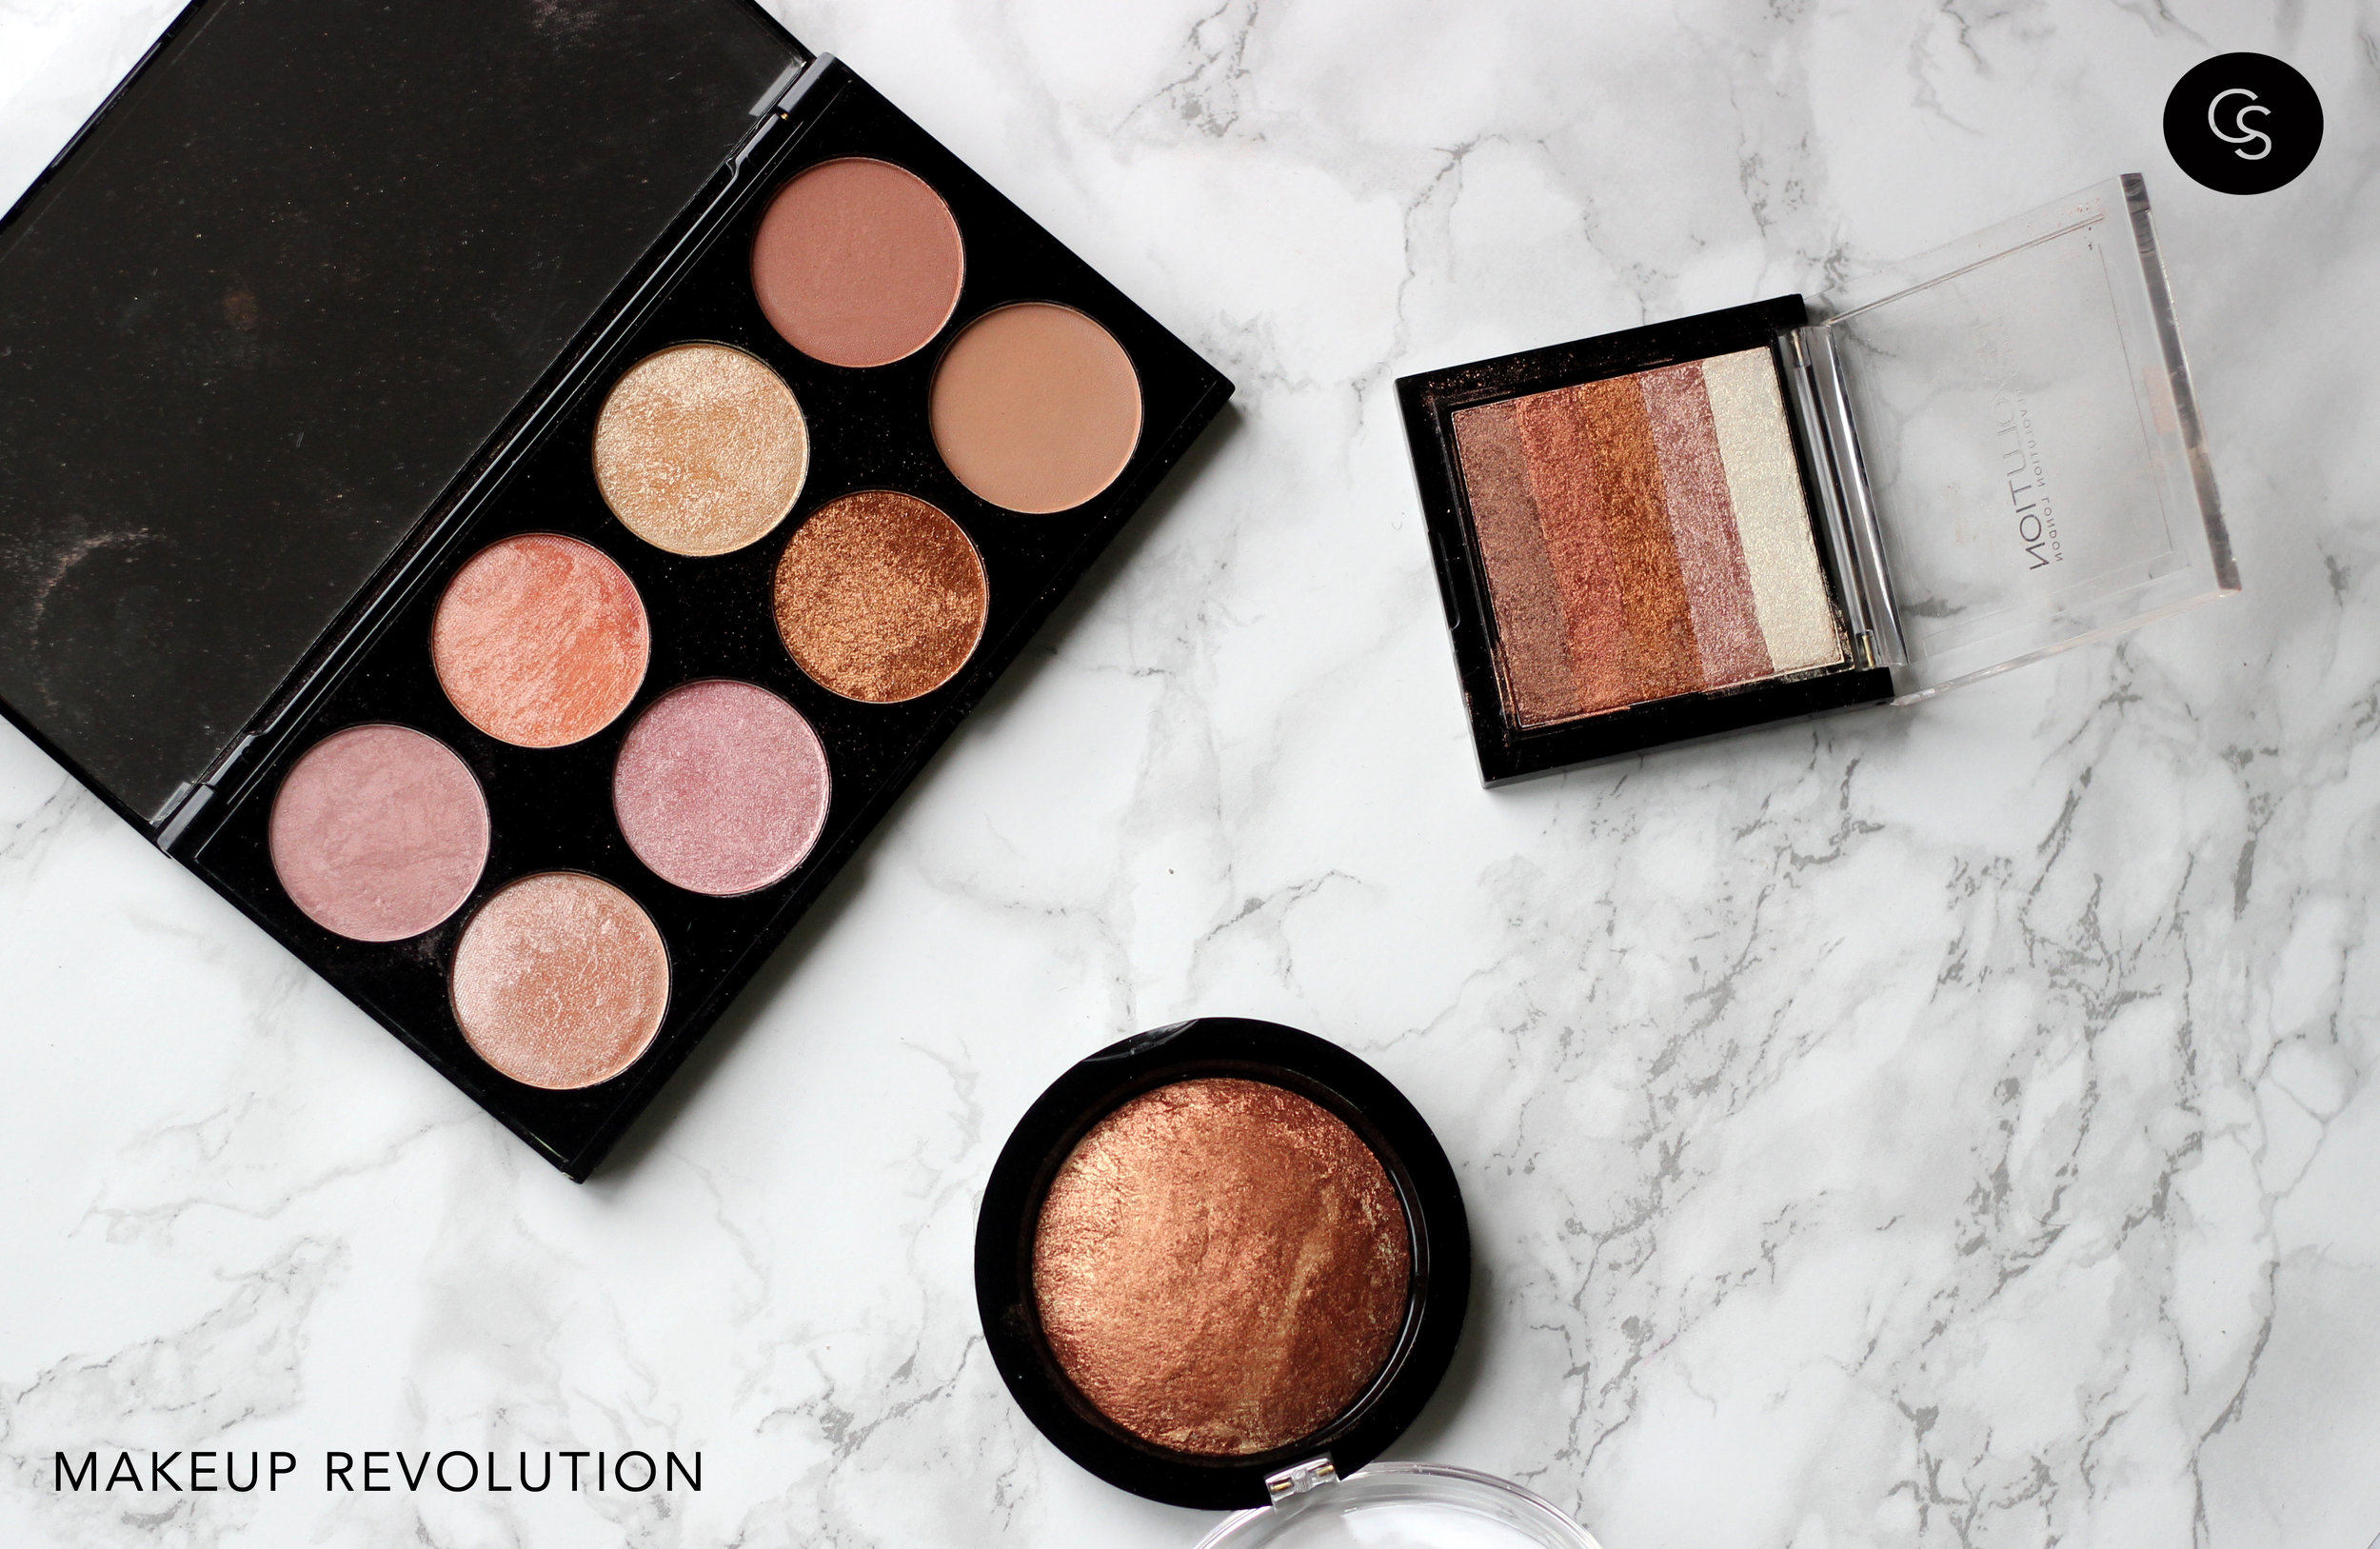 3. Makeup Revolution - This is not a new addition but it's definitely worth mentioning. They are a UK based brand but their products can be purchased both online and in stores.